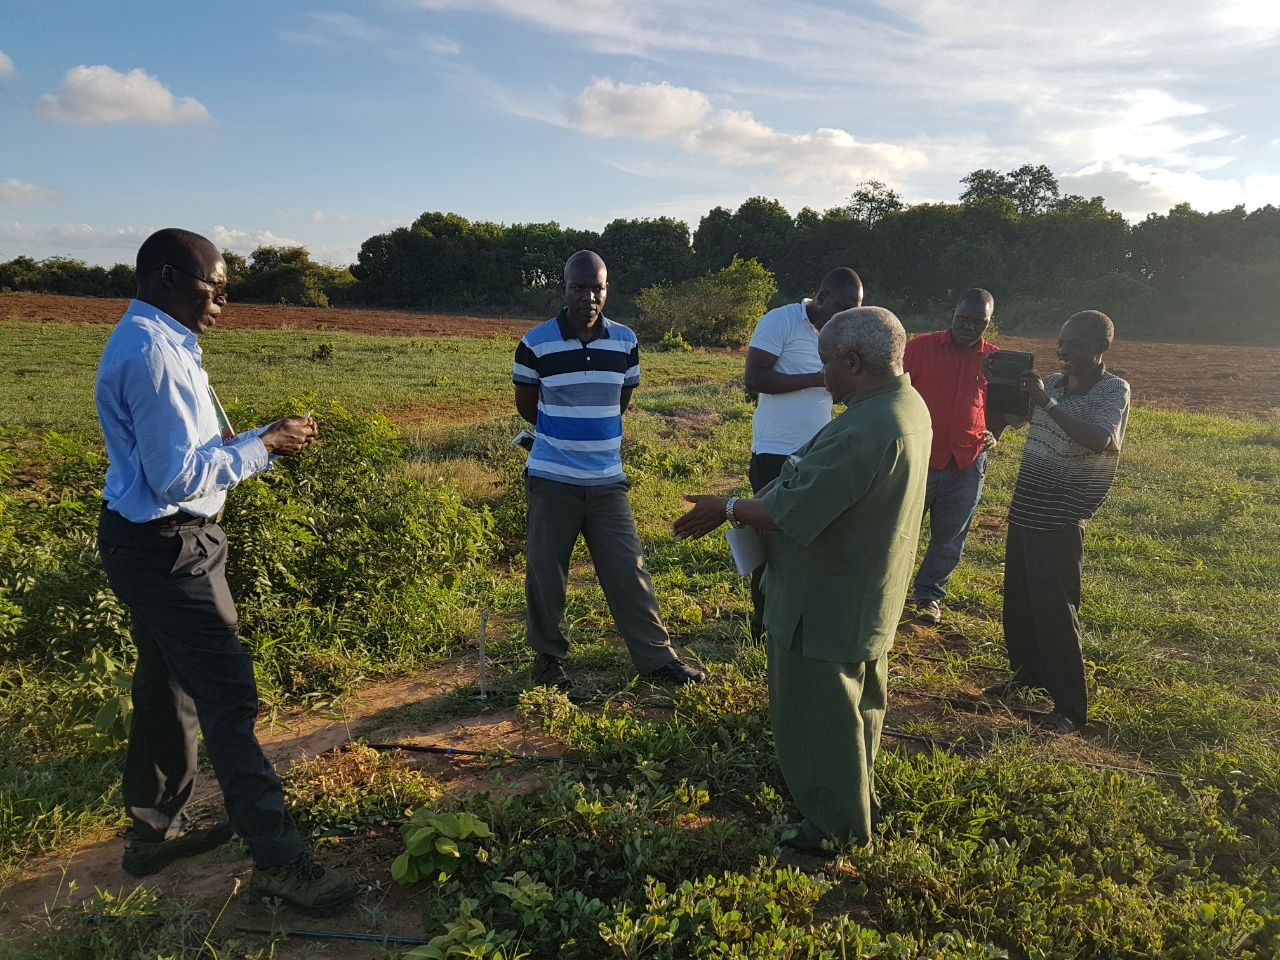 Dr. Chris Ojiewo (left) during an undertaking to monitor Implementation of Program Improvement (PIPs) of groundnuts in Tanzania. This falls under the Tropical Legumes III program of his work.